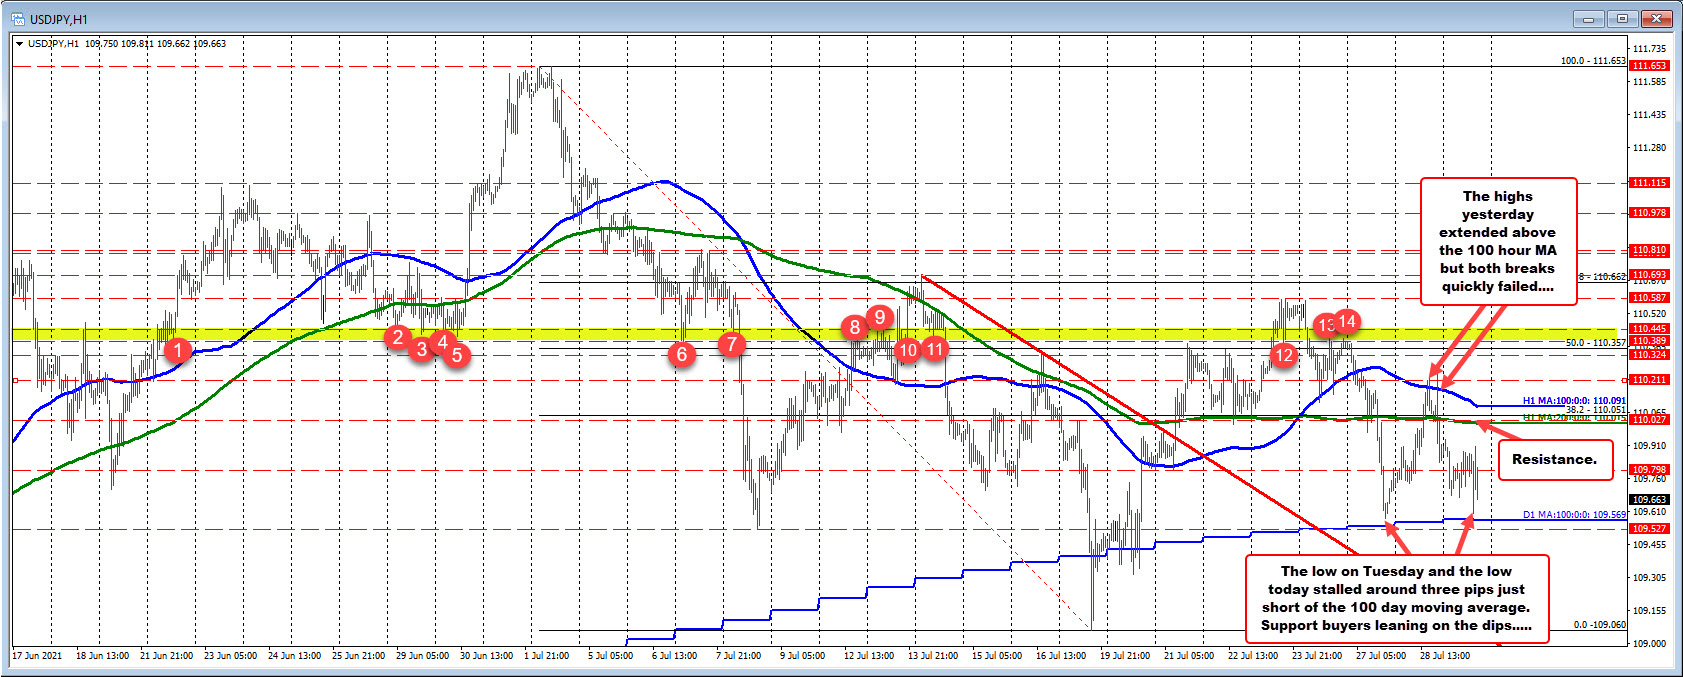 The USDJPY100 day moving averages at 109.569_